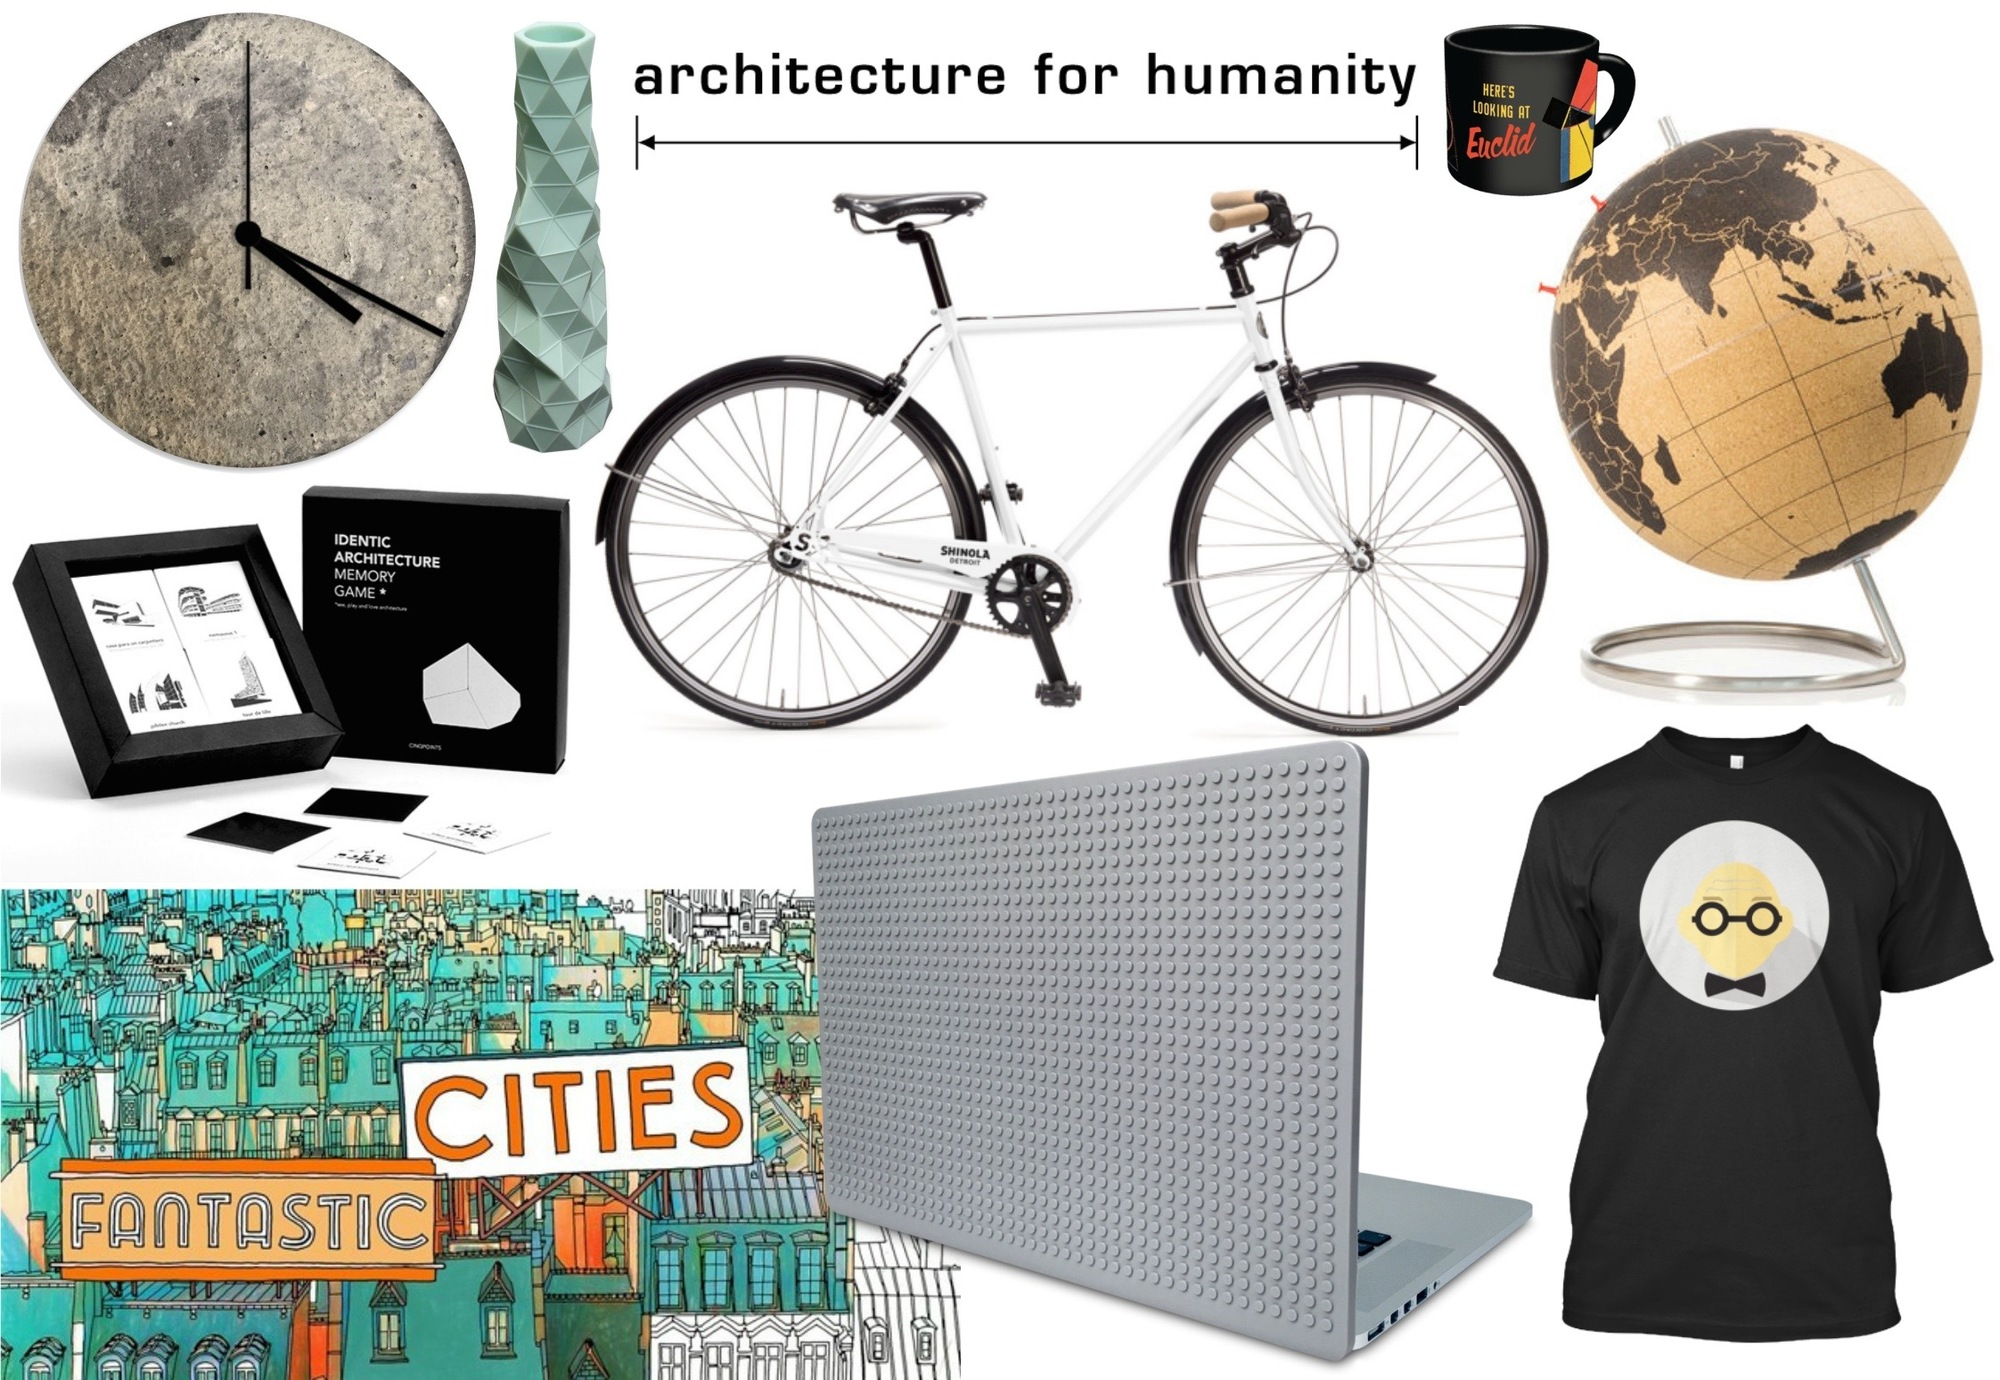 Architect Gift archdaily architect's holiday gift guide 2015 (part i) | archdaily